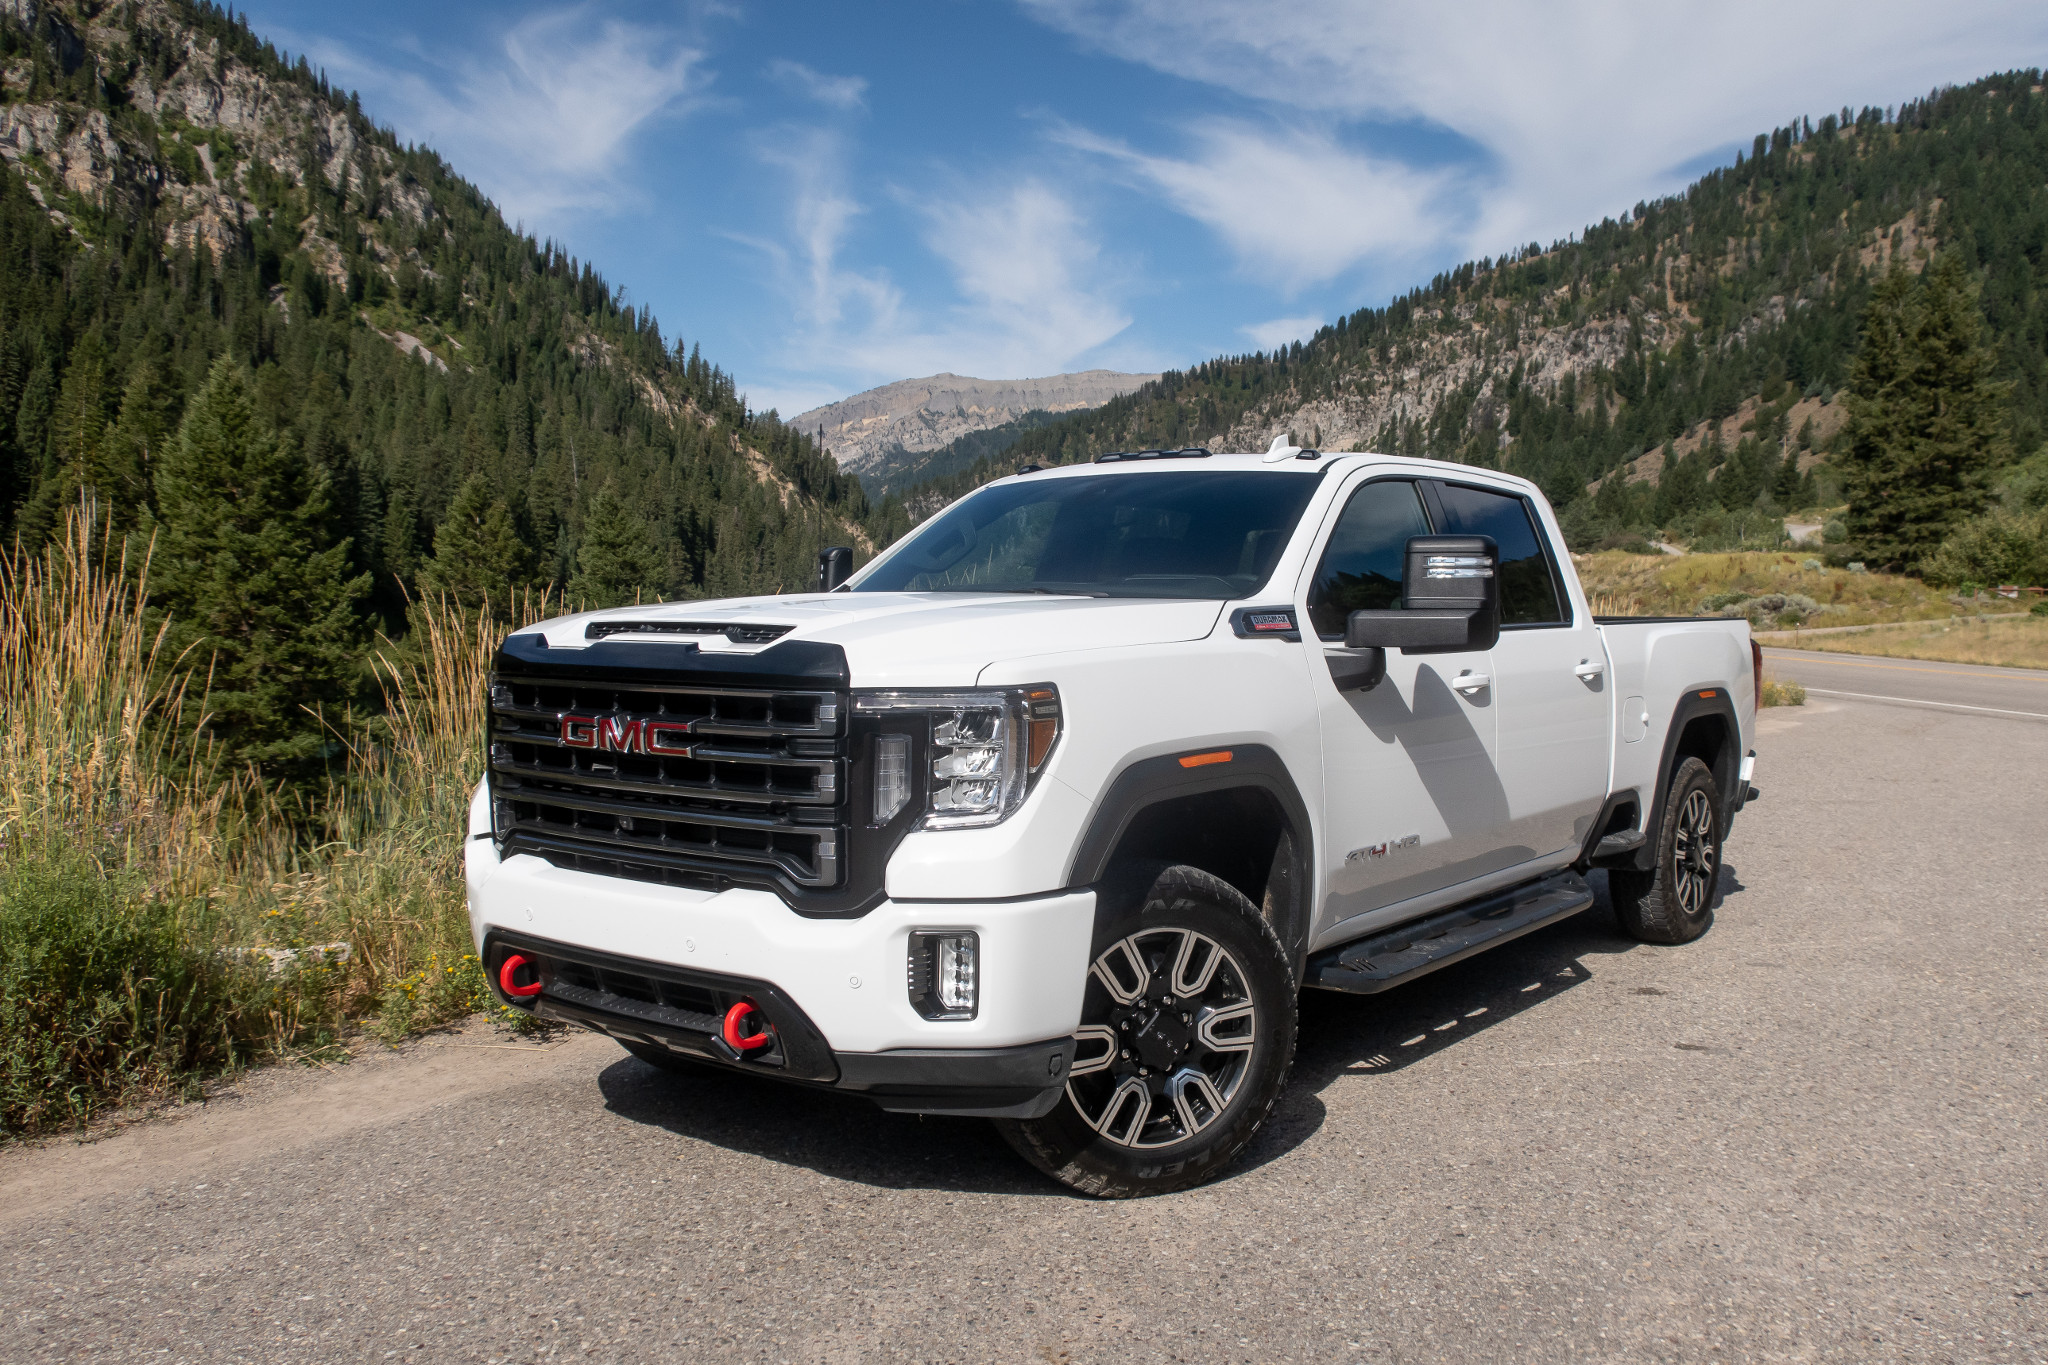 95 Best Review Pics Of 2020 Gmc 2500 Model by Pics Of 2020 Gmc 2500